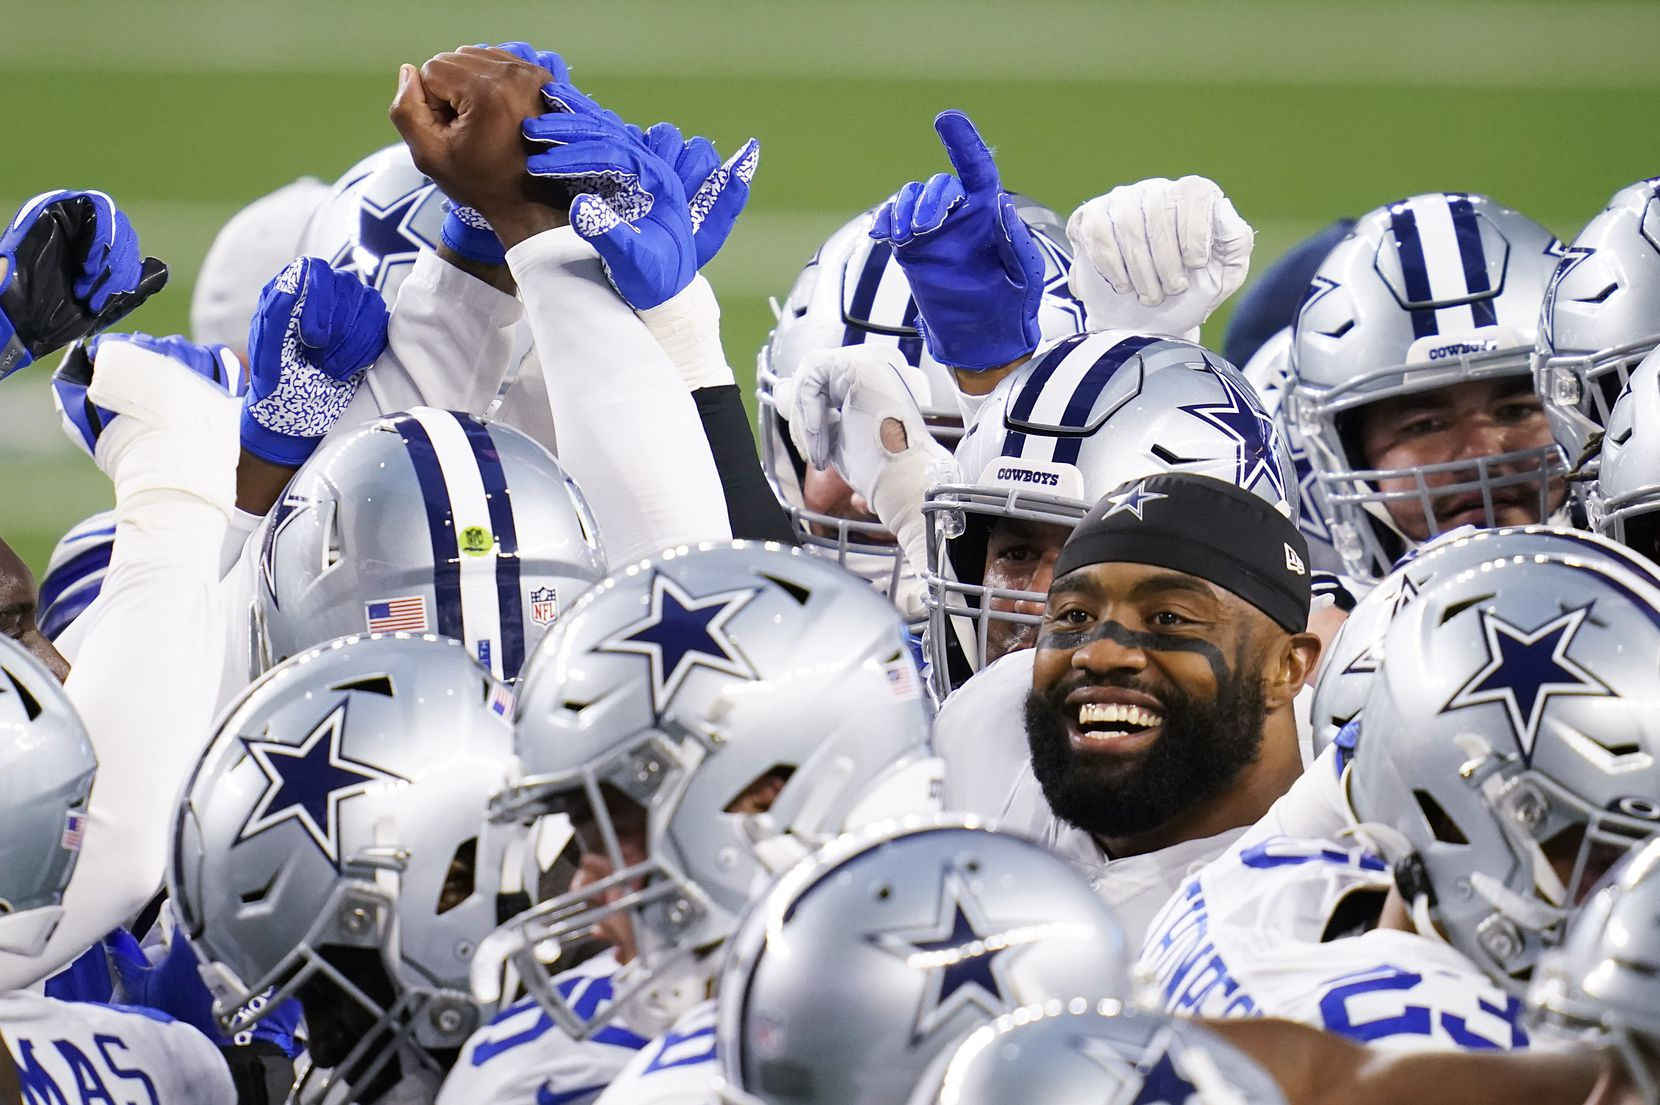 Dallas Cowboys defensive end Everson Griffen huddles with teammates before an NFL football game against the Arizona Cardinals at AT&T Stadium on Monday, Oct. 19, 2020, in Arlington. (Smiley N. Pool/The Dallas Morning News)